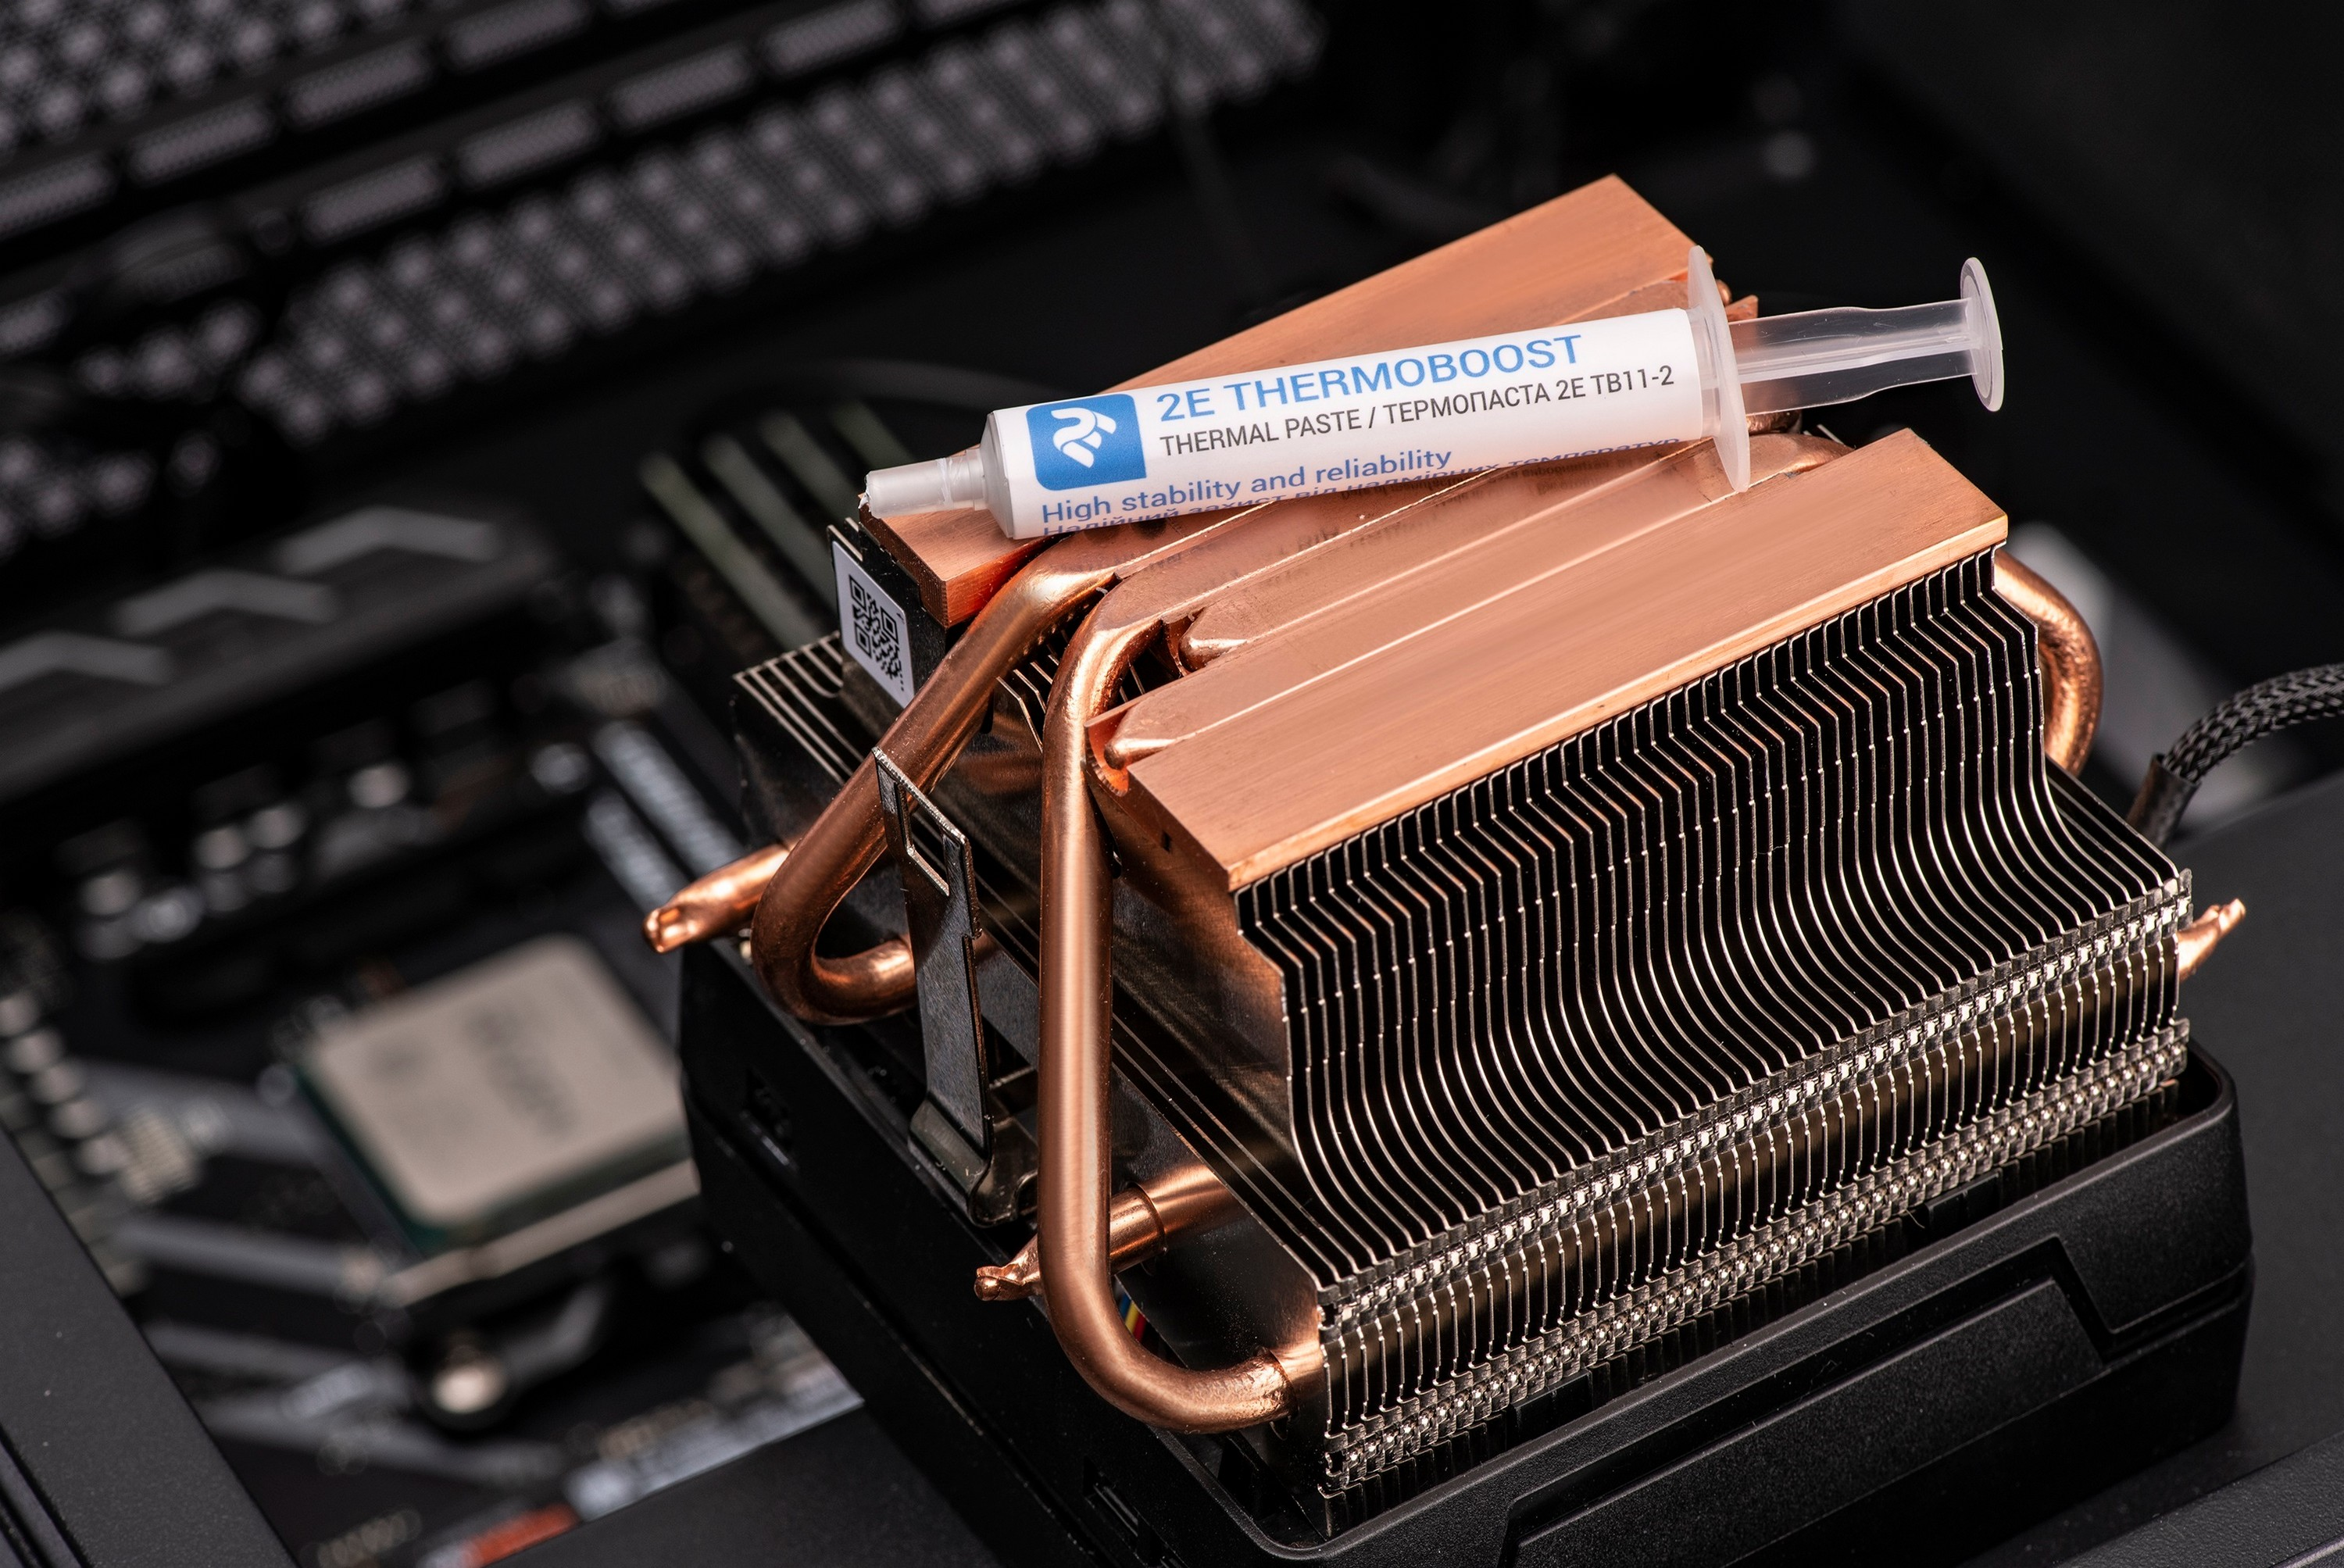 2E THERMOBOOST thermal paste – reliable protection against excessive temperatures